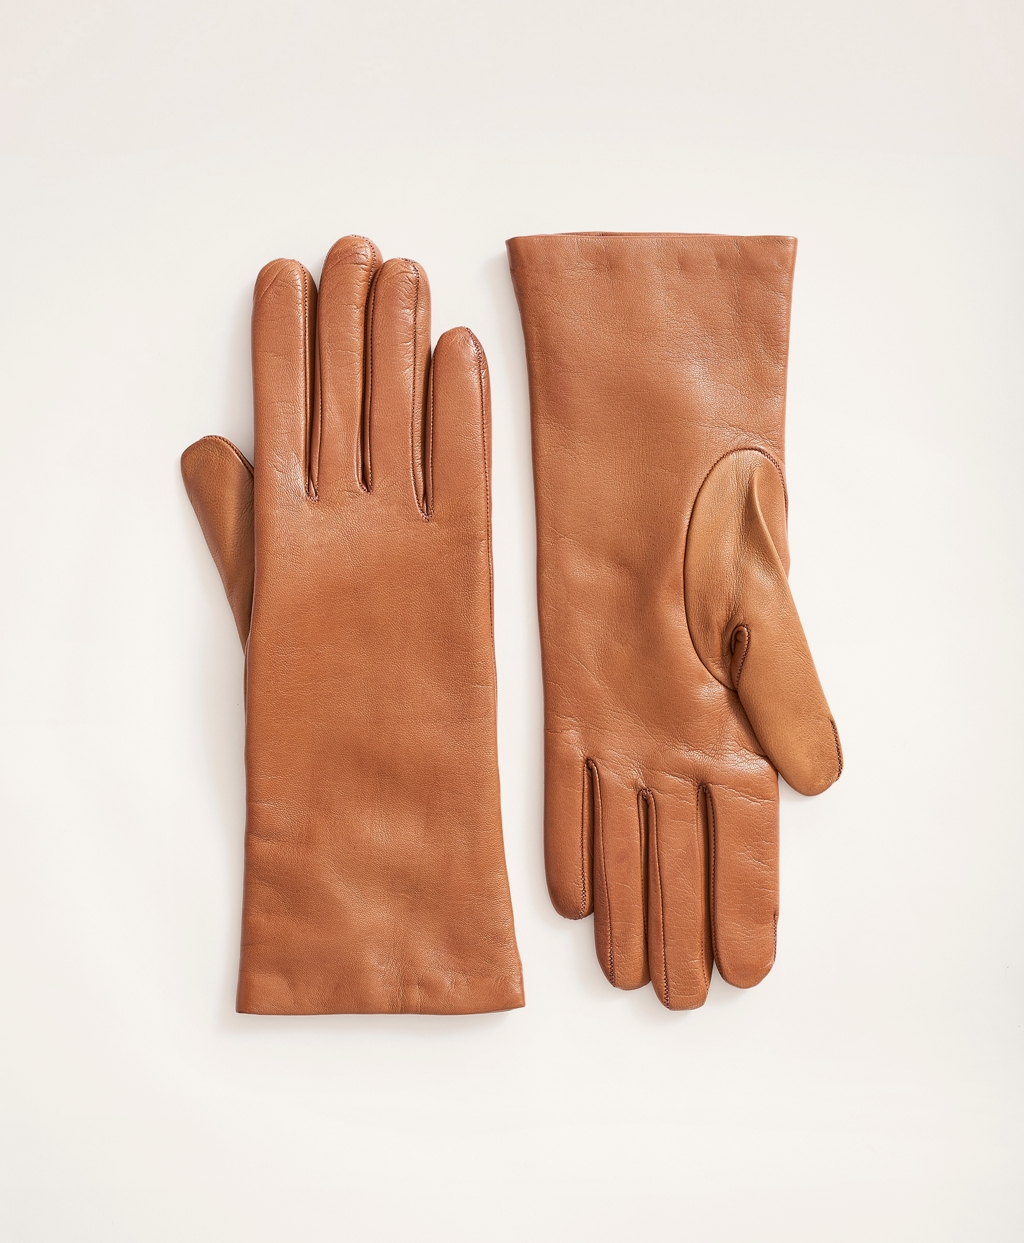 Vintage Gloves History- 1900, 1910, 1920, 1930 1940, 1950, 1960 Brooks Brothers Womens Cashmere Lined Leather Gloves $138.00 AT vintagedancer.com